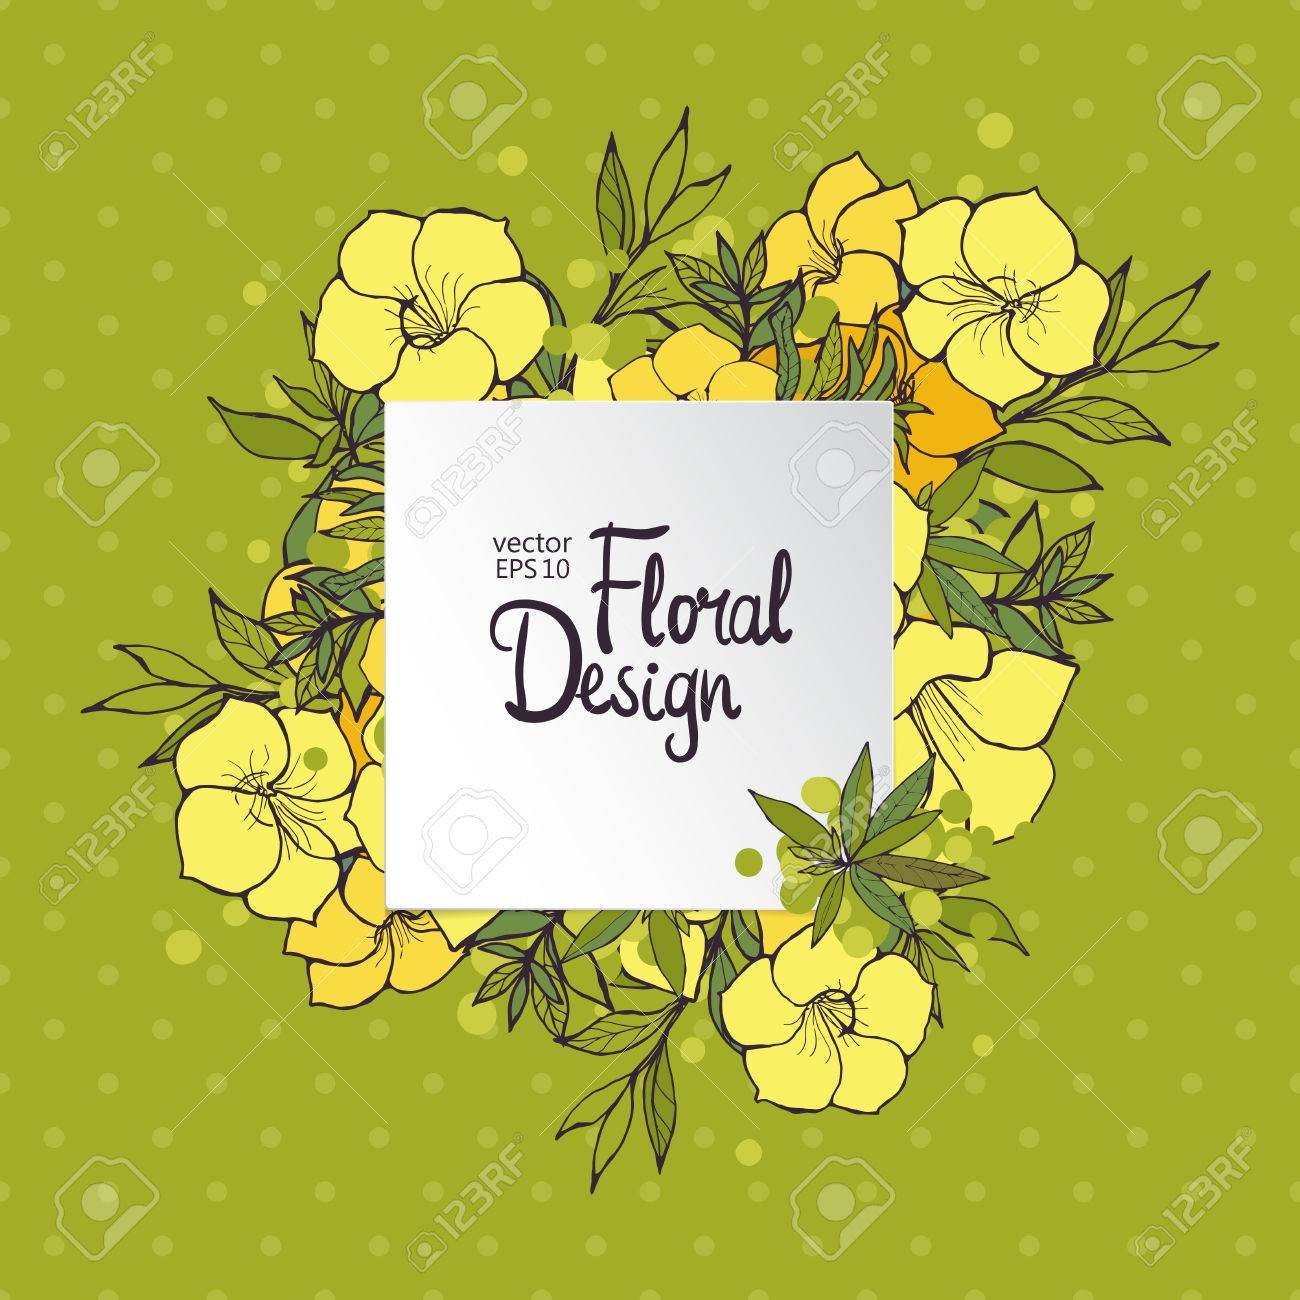 Square floral frame with exotic yellow flowers on green polka square floral frame with exotic yellow flowers on green polka dot background stock vector 45728233 mightylinksfo